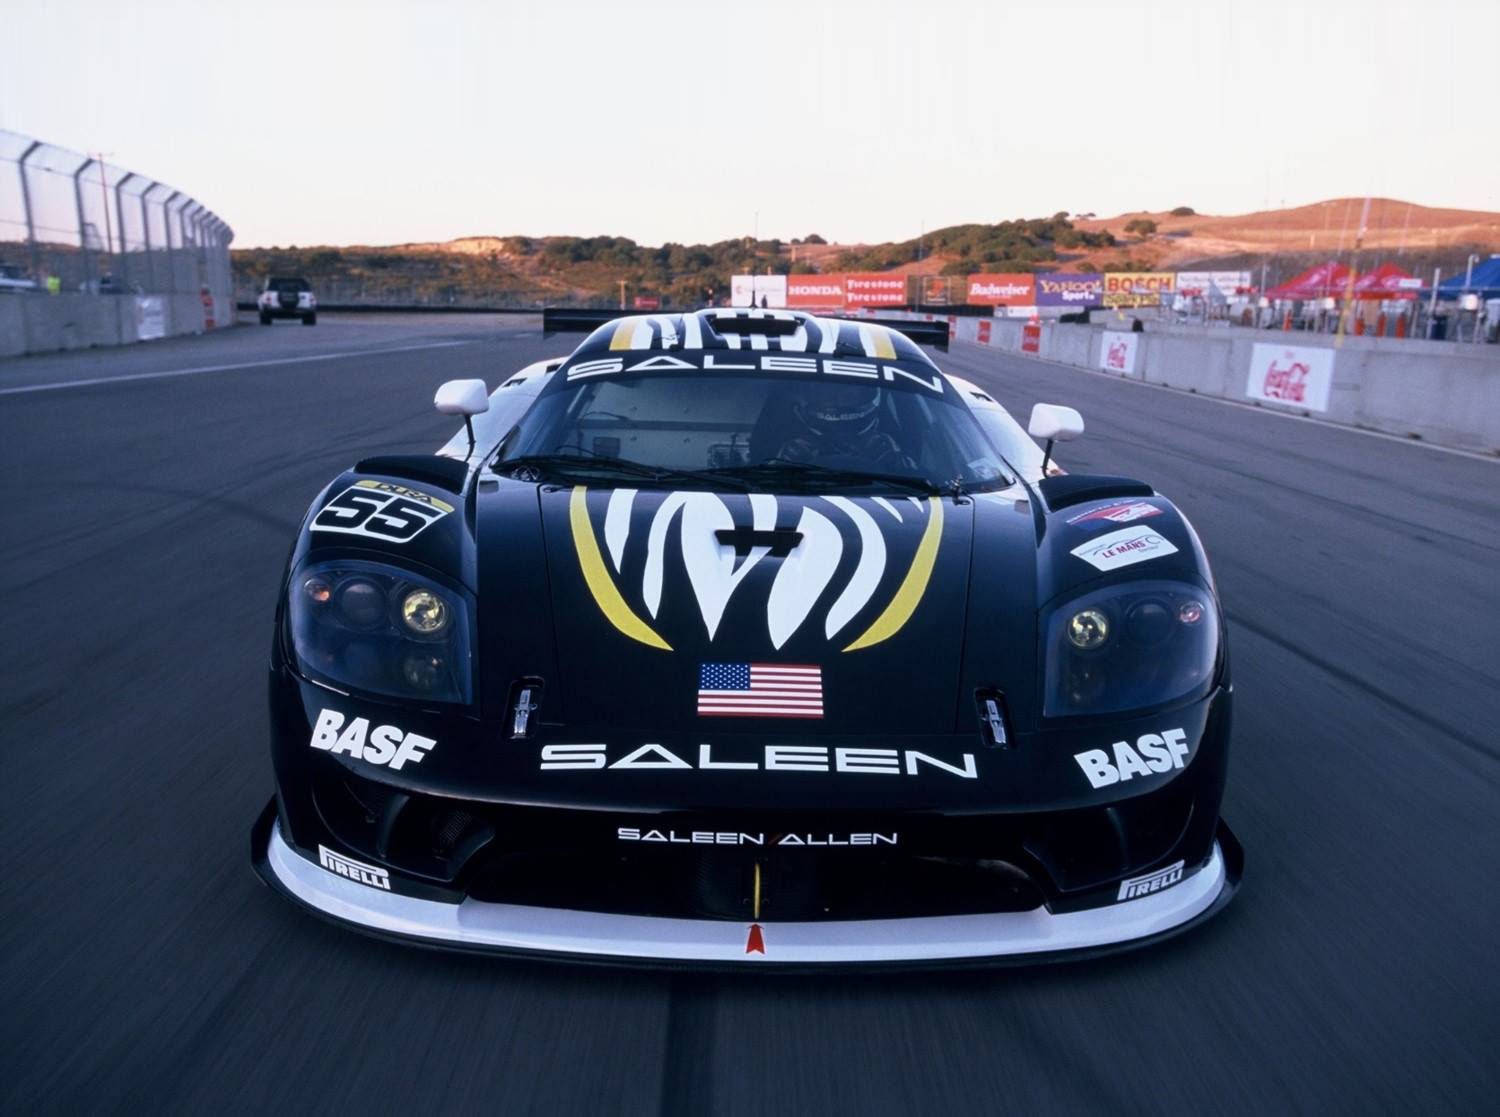 S7R Saleen team car